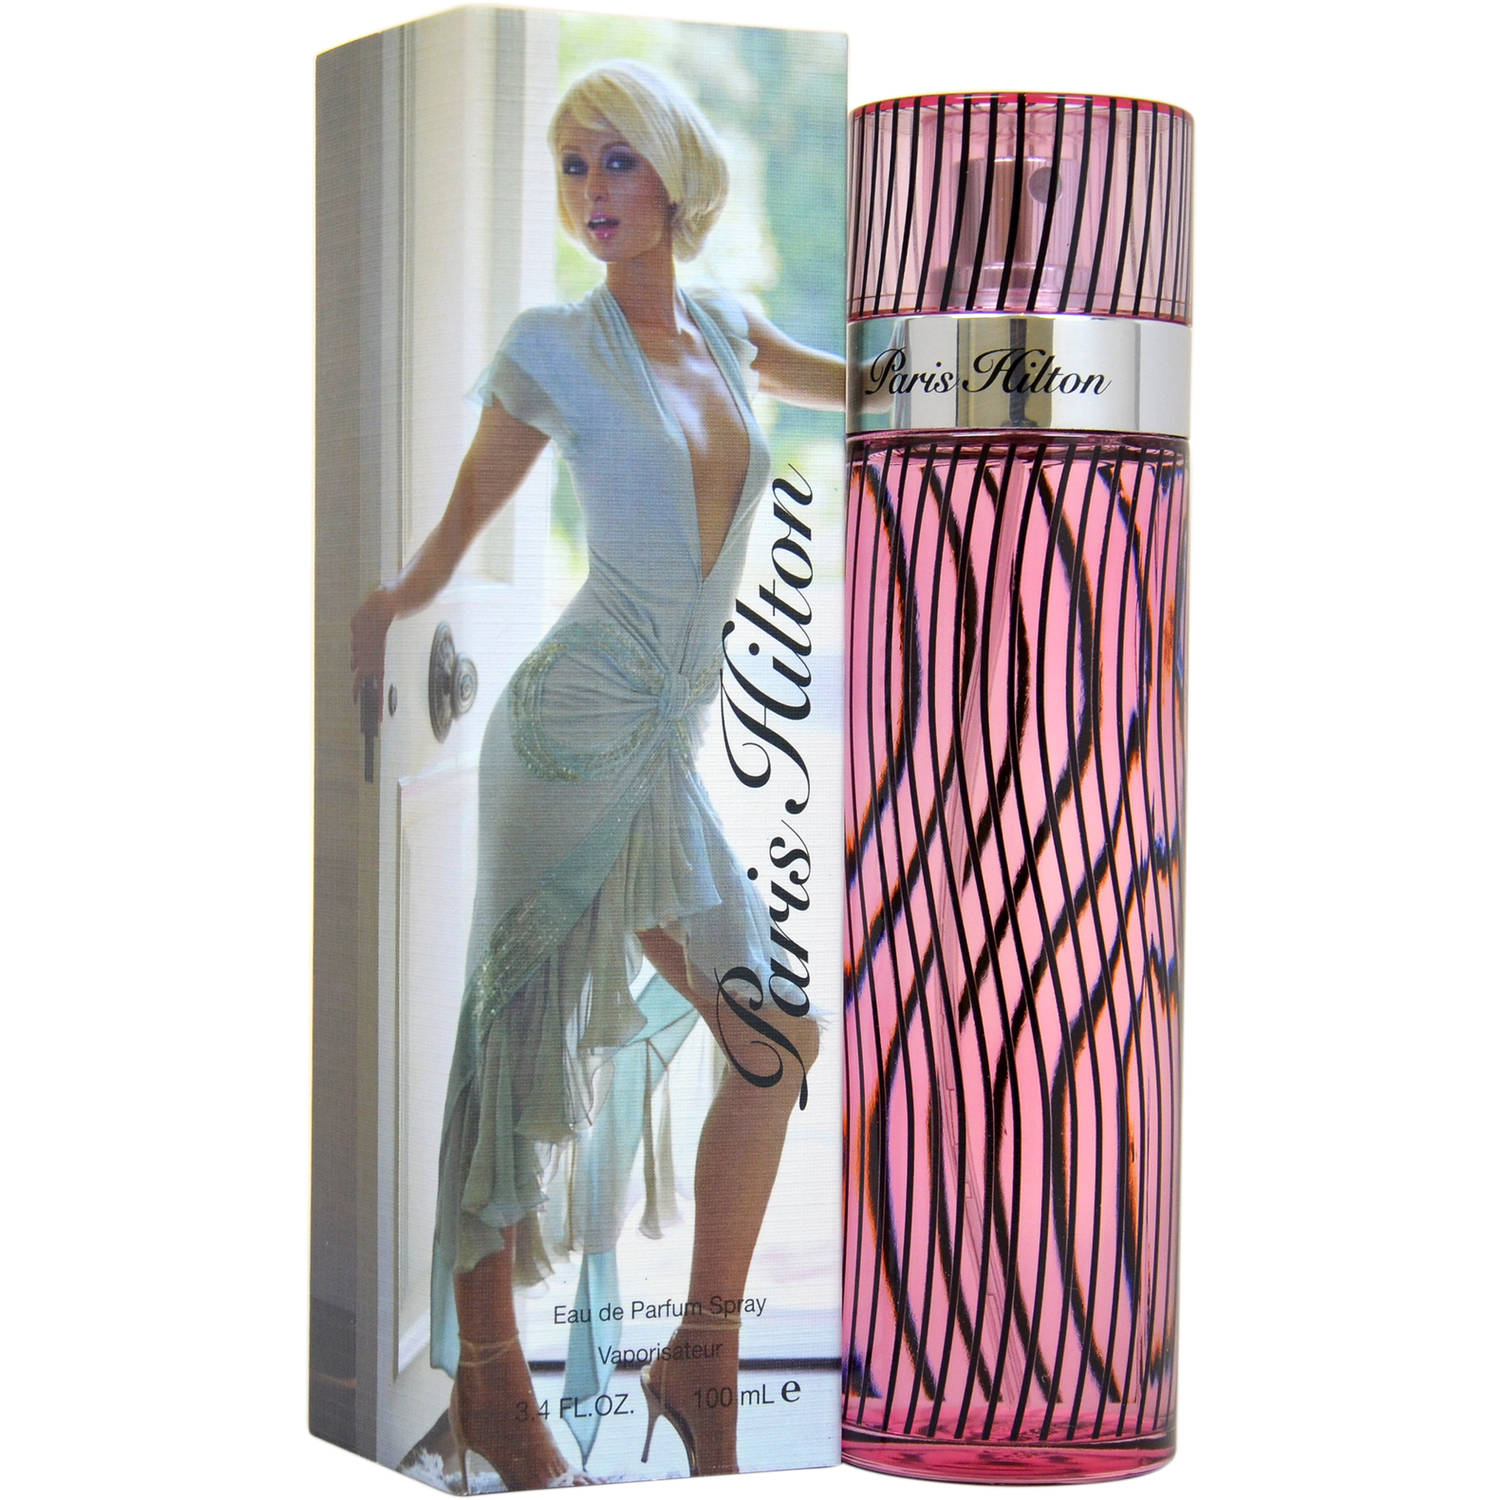 Paris Hilton Women's EDP Spray, 3.4 fl oz